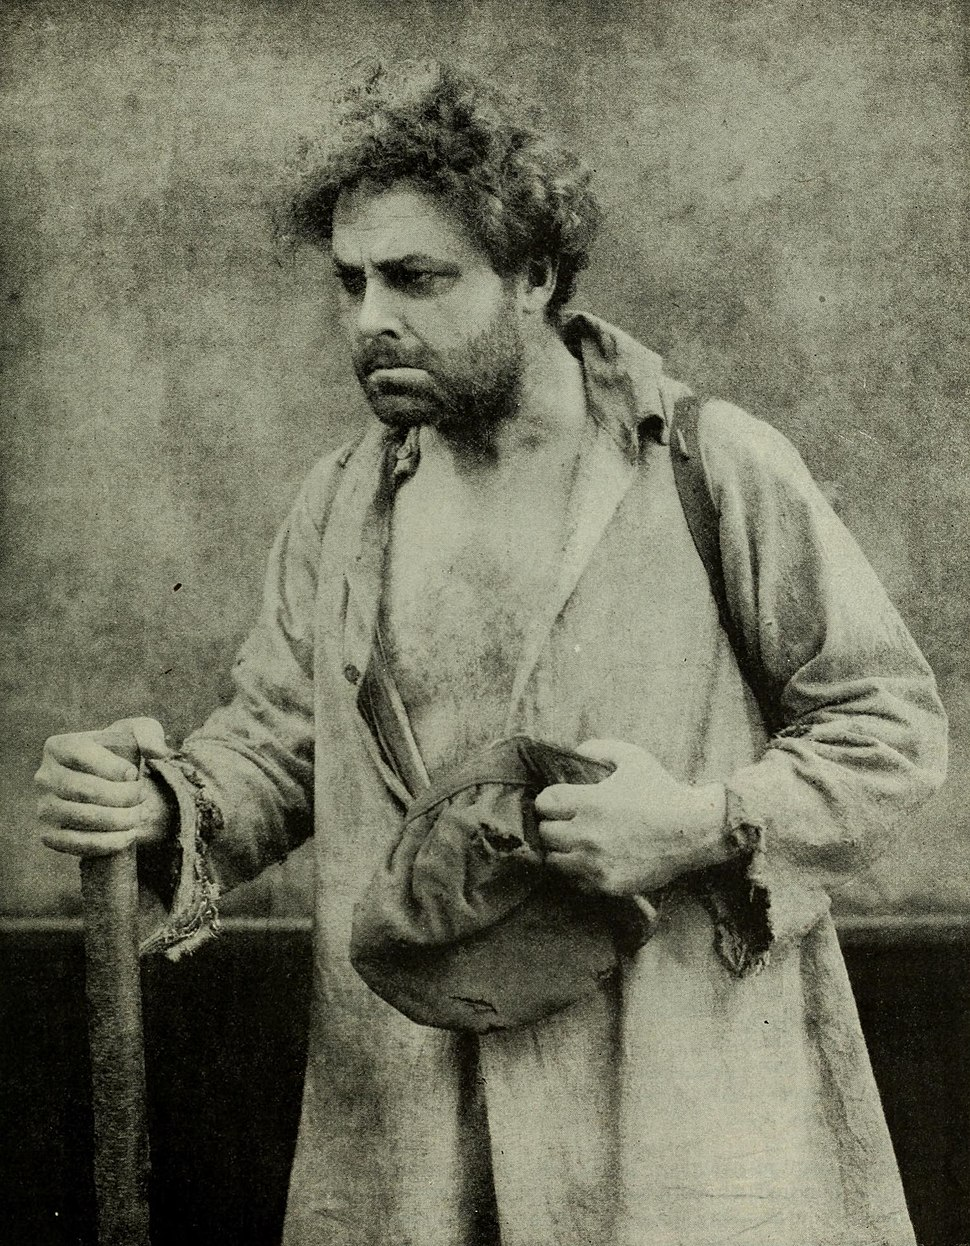 William Farnum as Jean Valjean